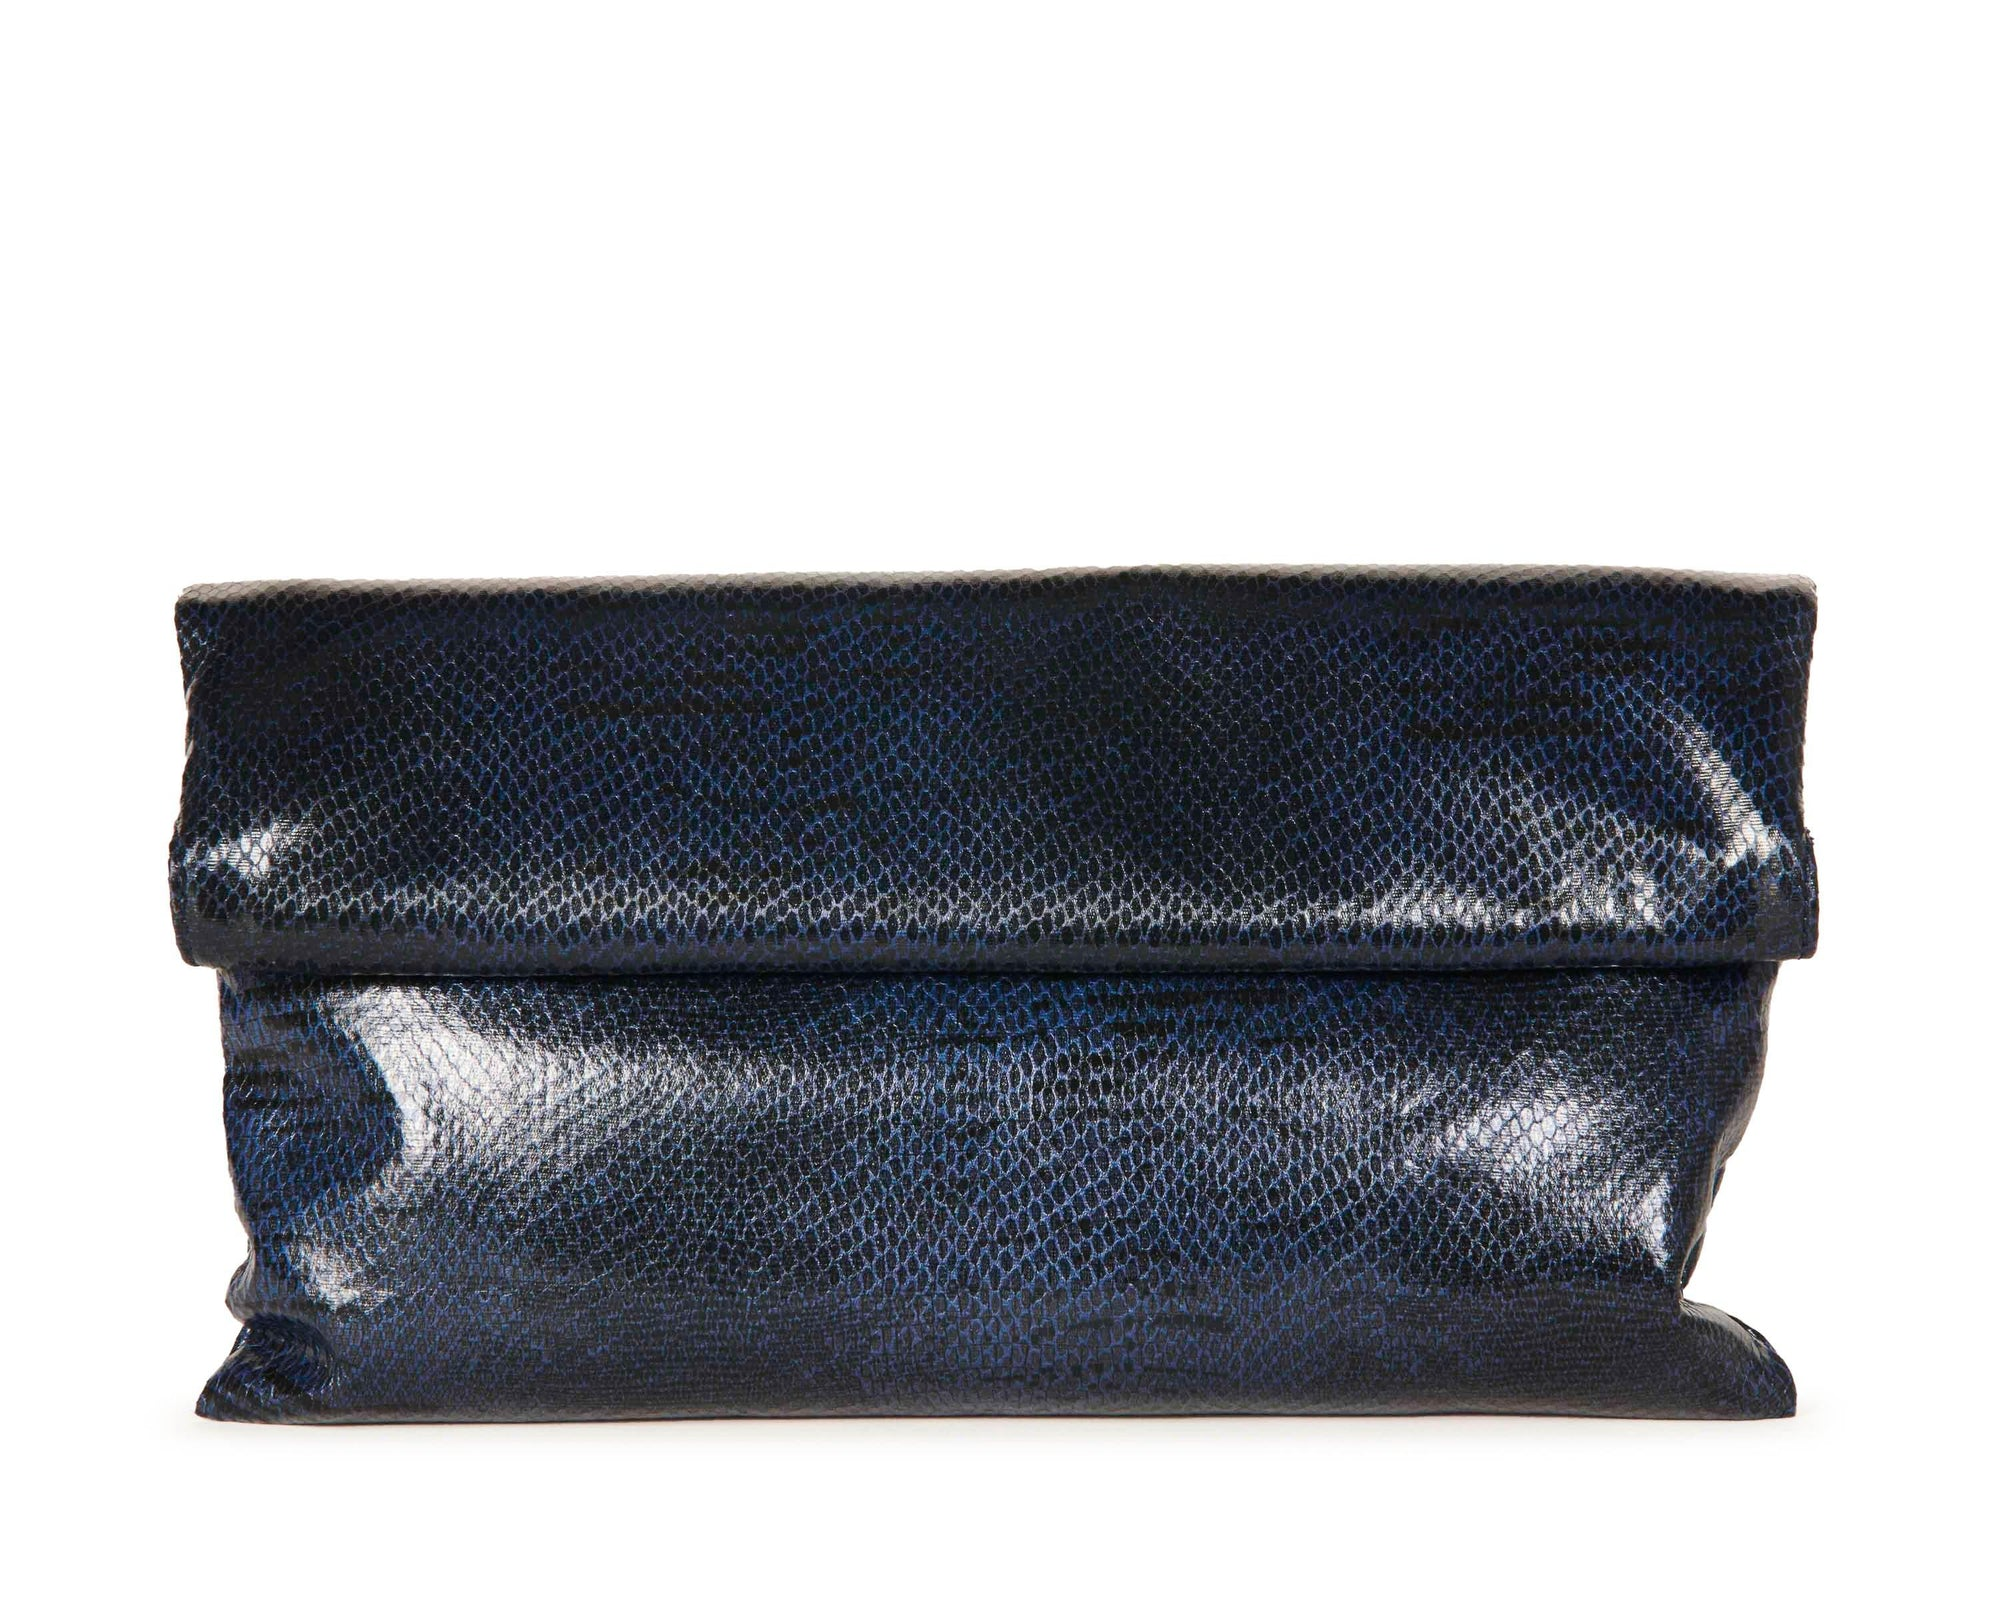 Hypeach Navy Snakeskin Clutch Accessories HYPEACH BOUTIQUE